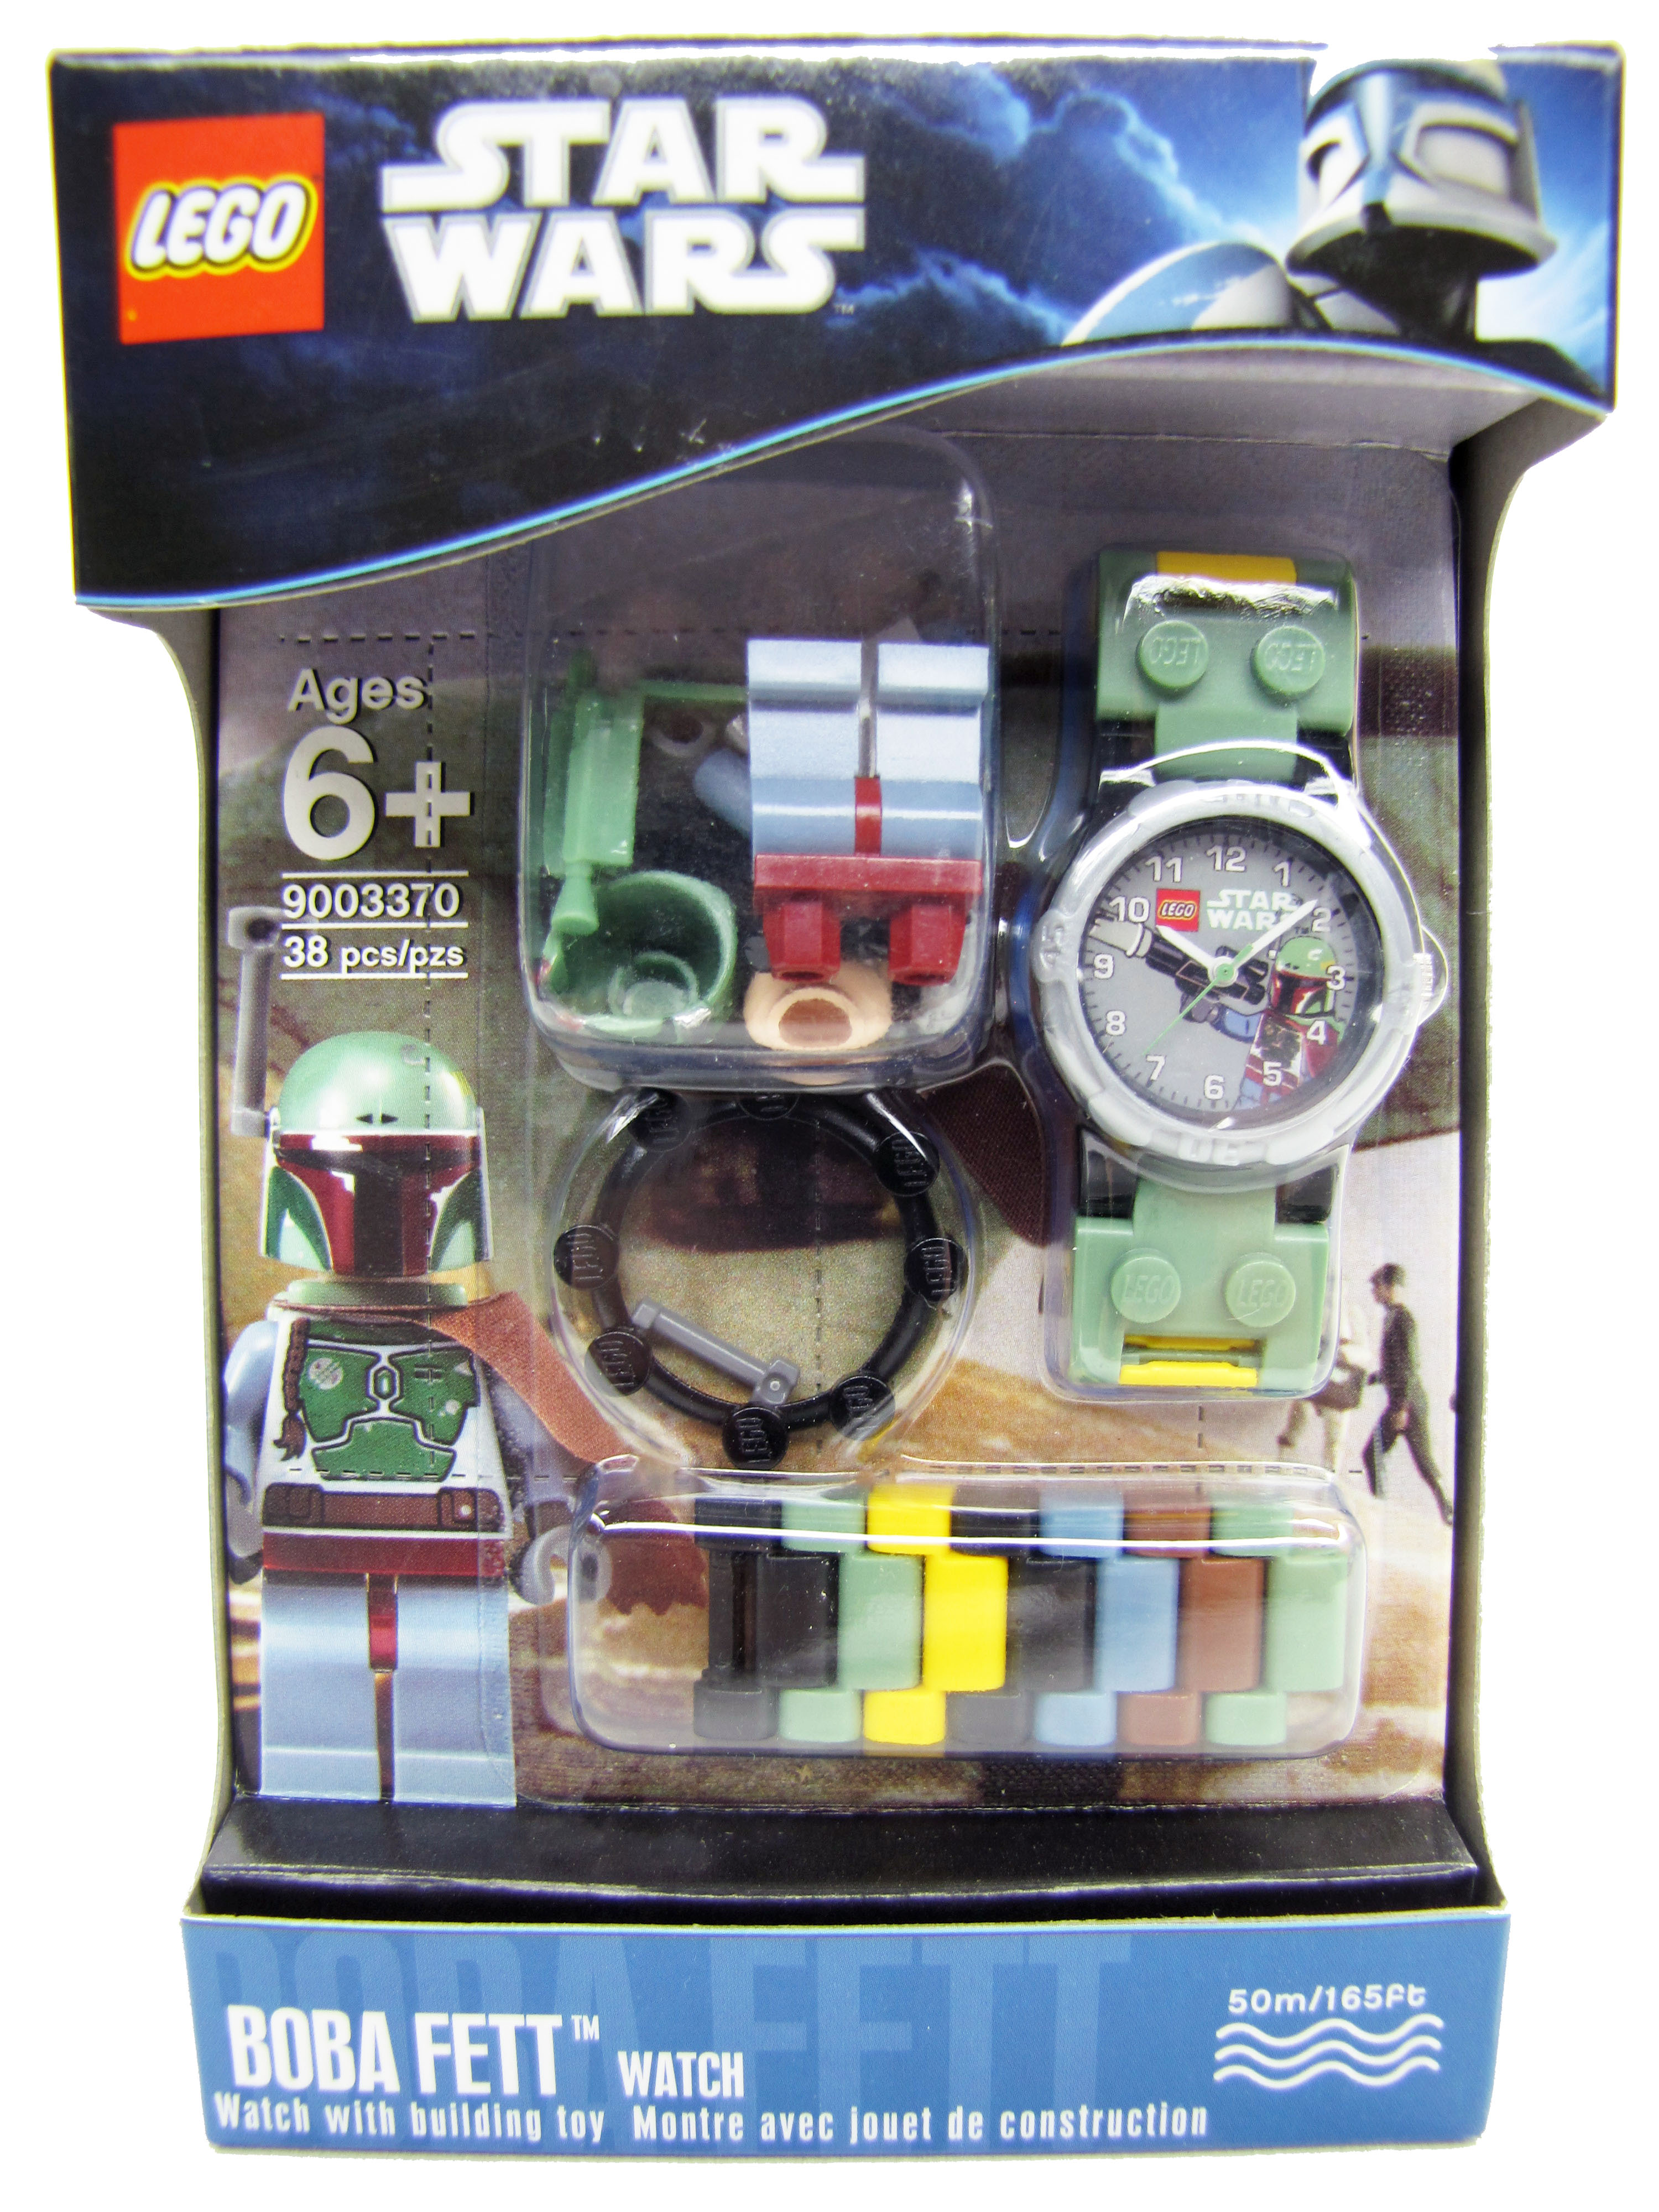 Lego Star Wars Boba Fett Minifigure Watch NEW Lego Time 9003370